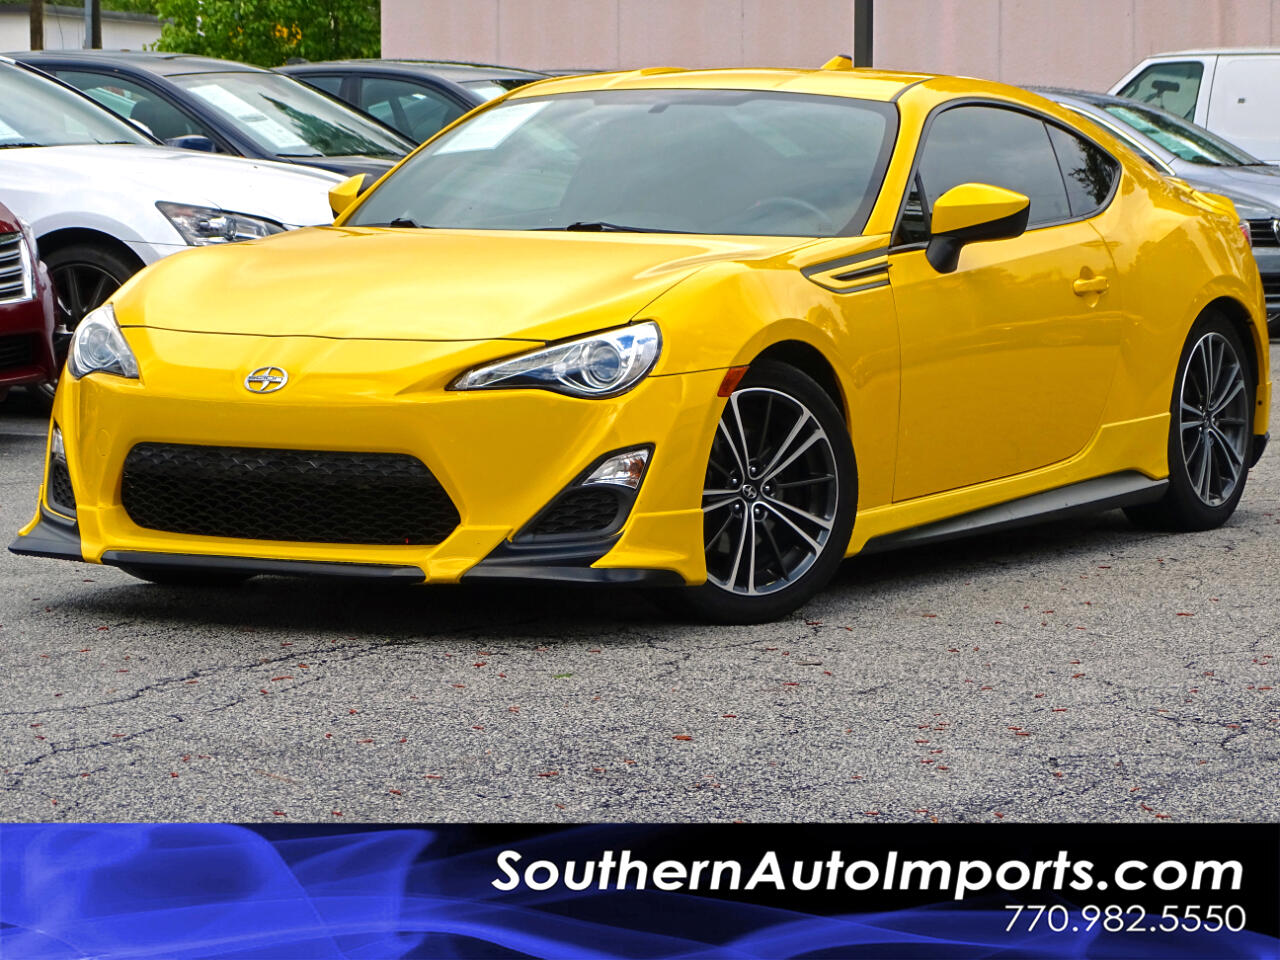 2015 Scion FR-S Release Series 1.0 1367 of 1500